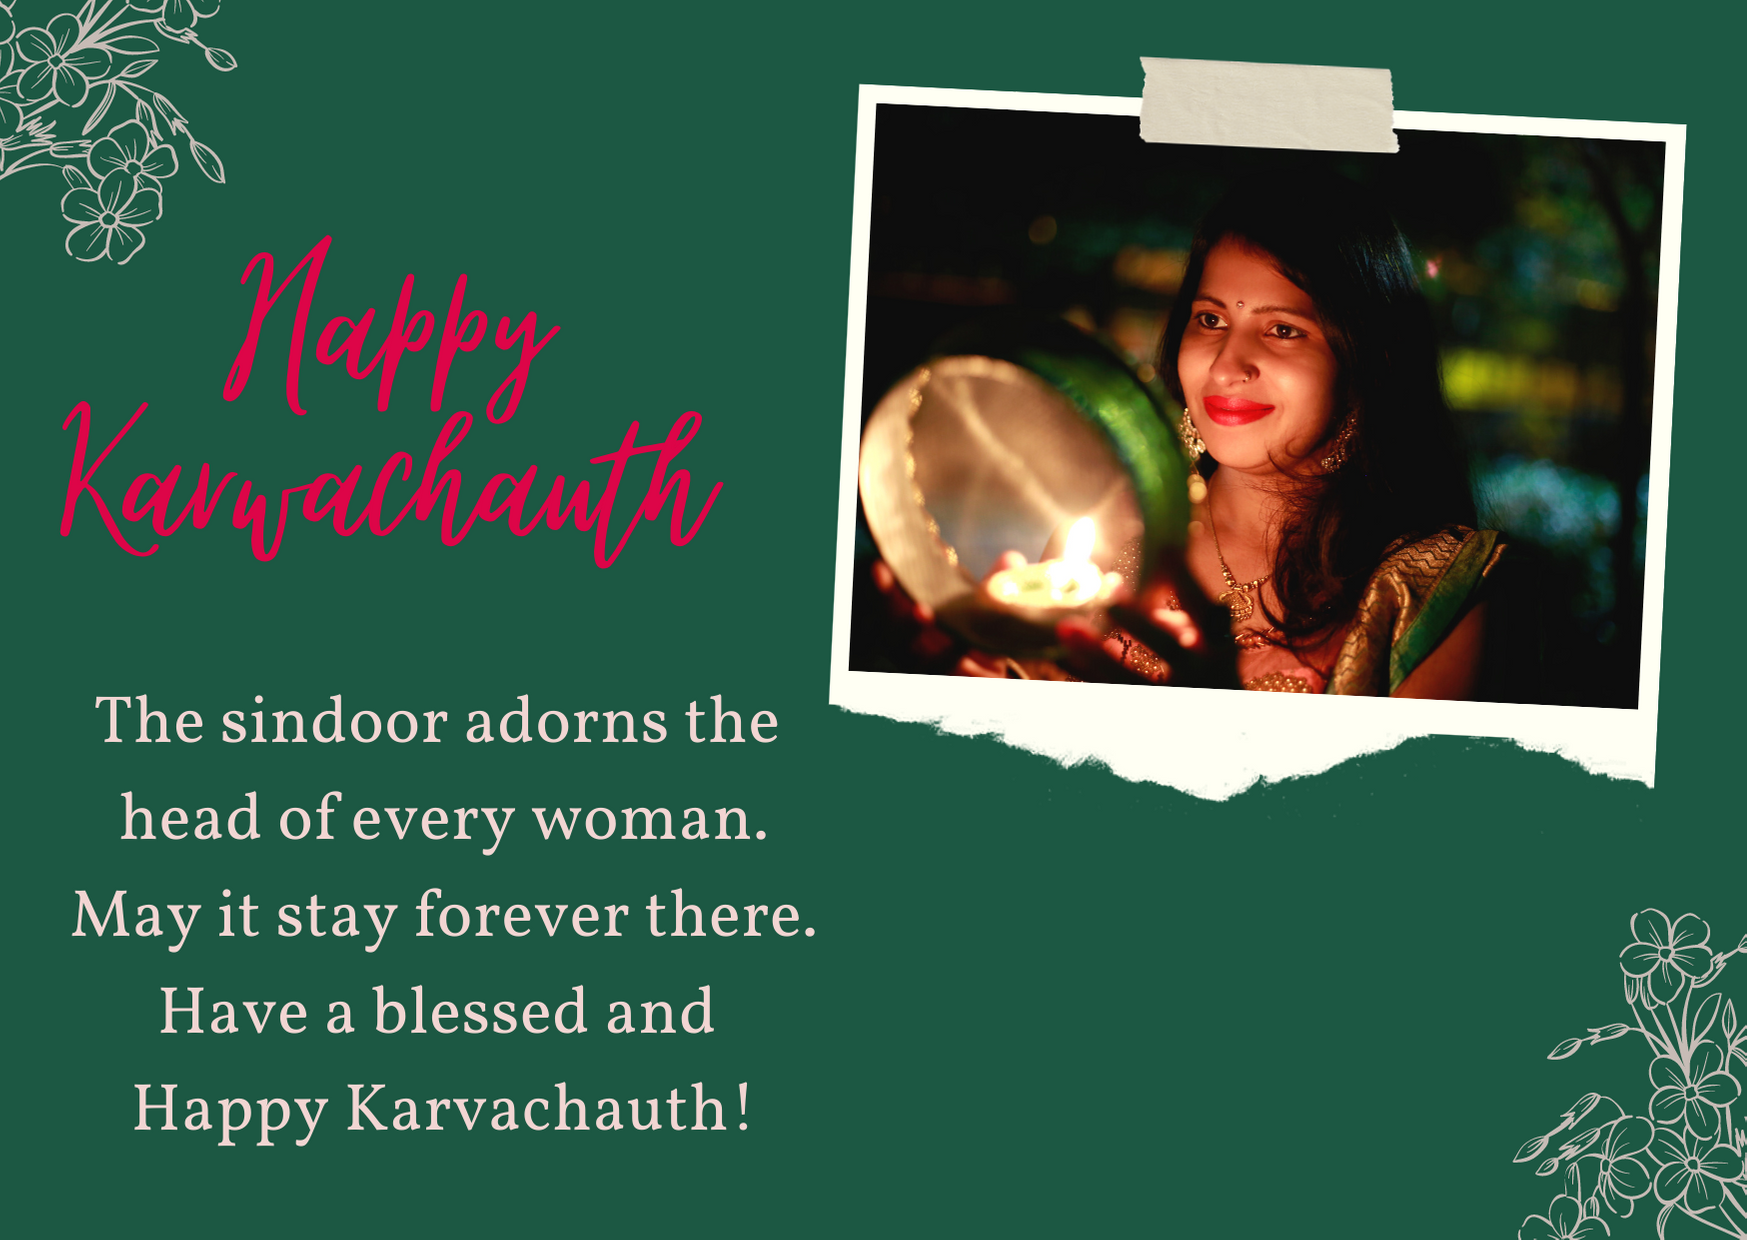 karwa chauth ki wishes